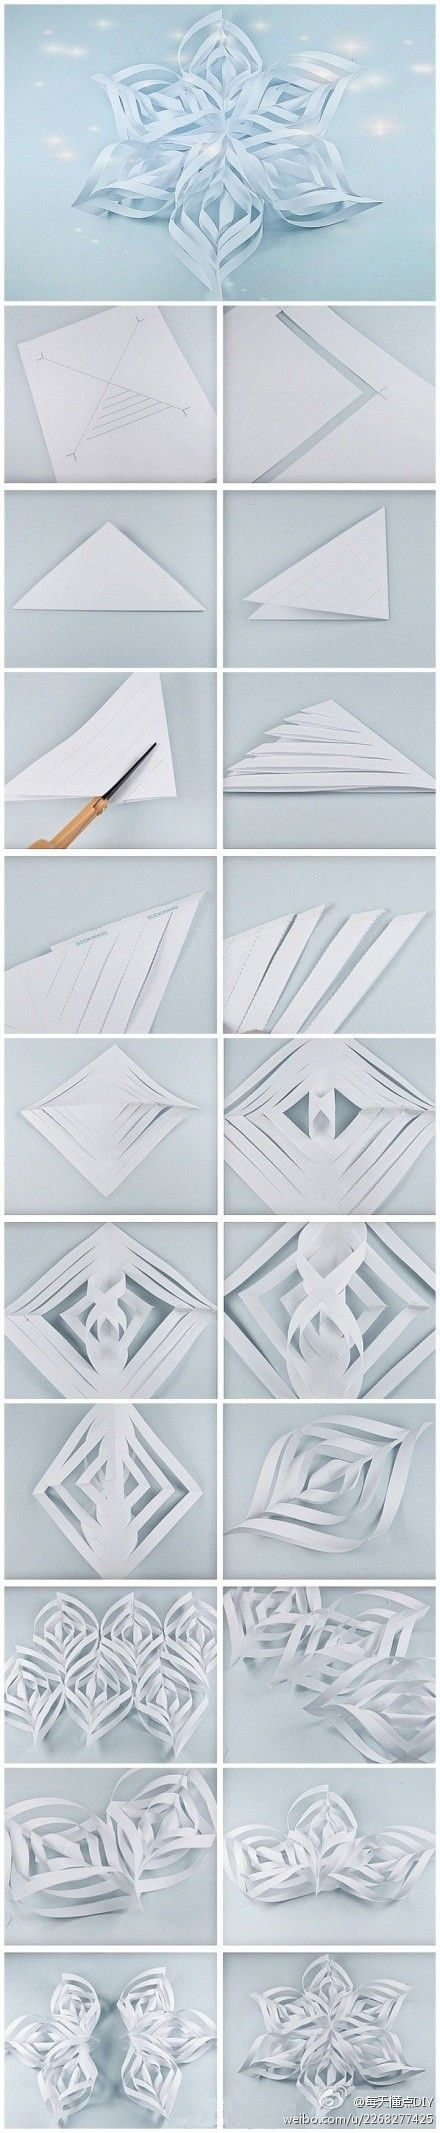 Make Christmas snowflakes - use two sided paper for an interesting effect.